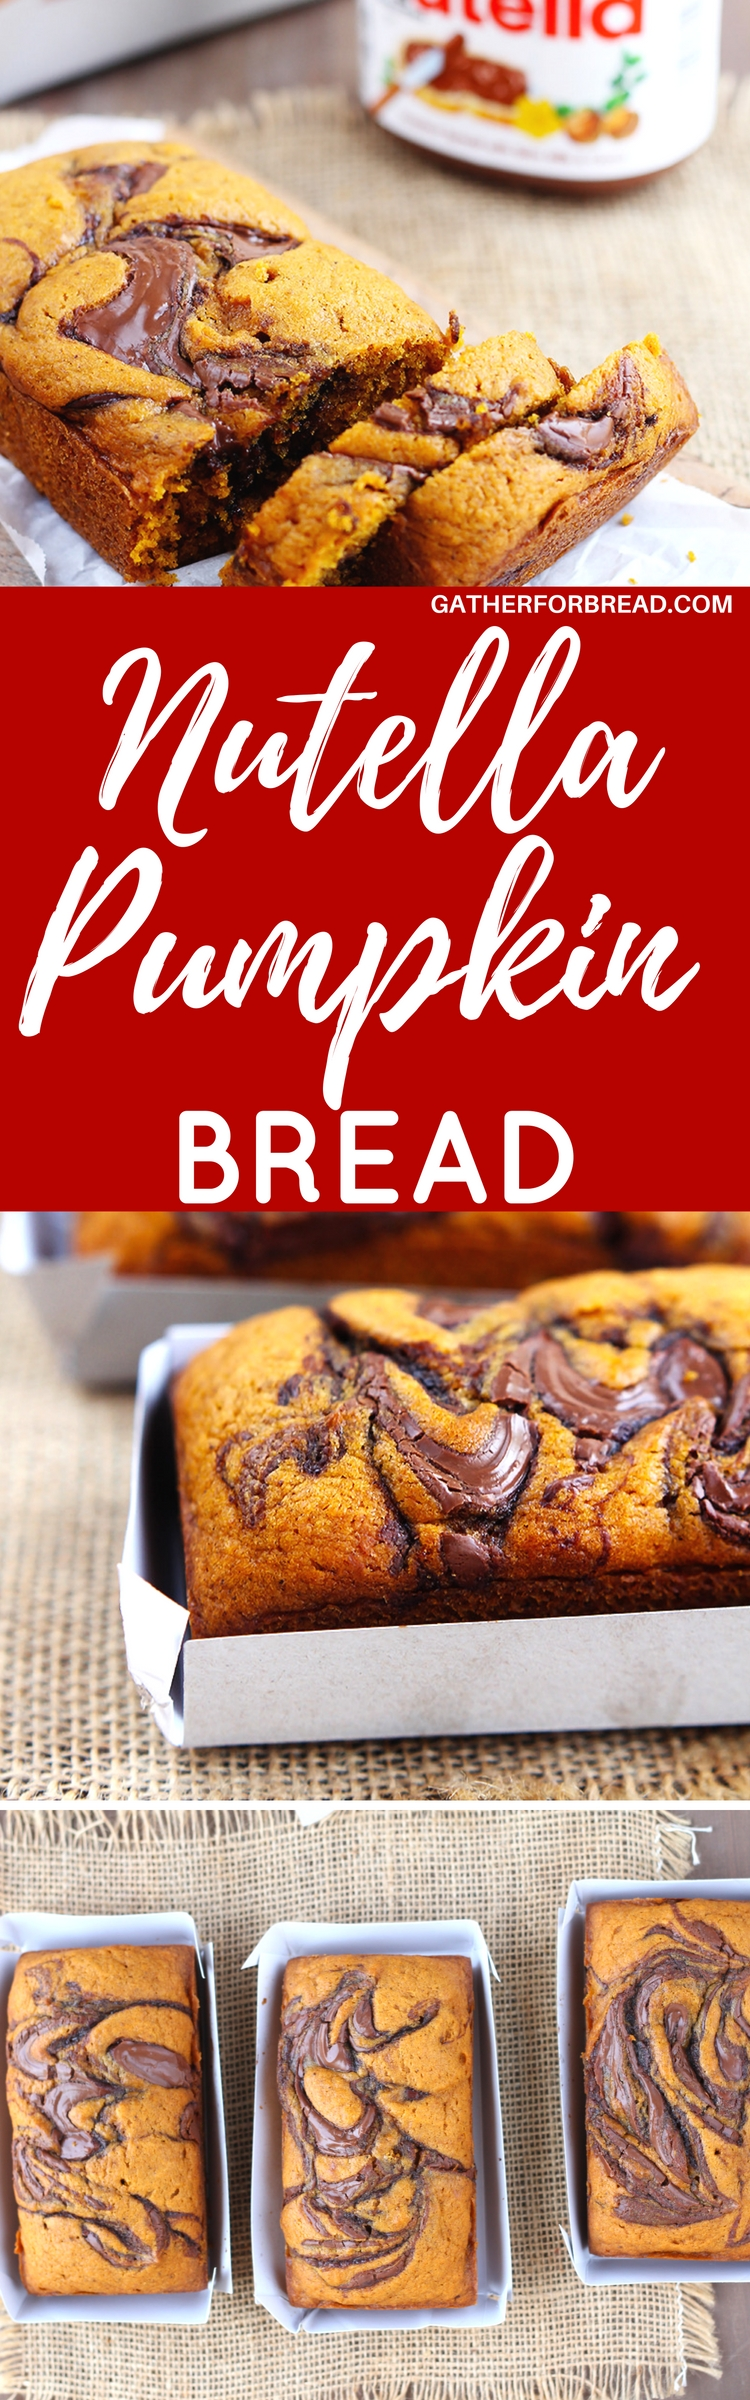 Discussion on this topic: How to Make Nutella Swirled Pumpkin Bread, how-to-make-nutella-swirled-pumpkin-bread/